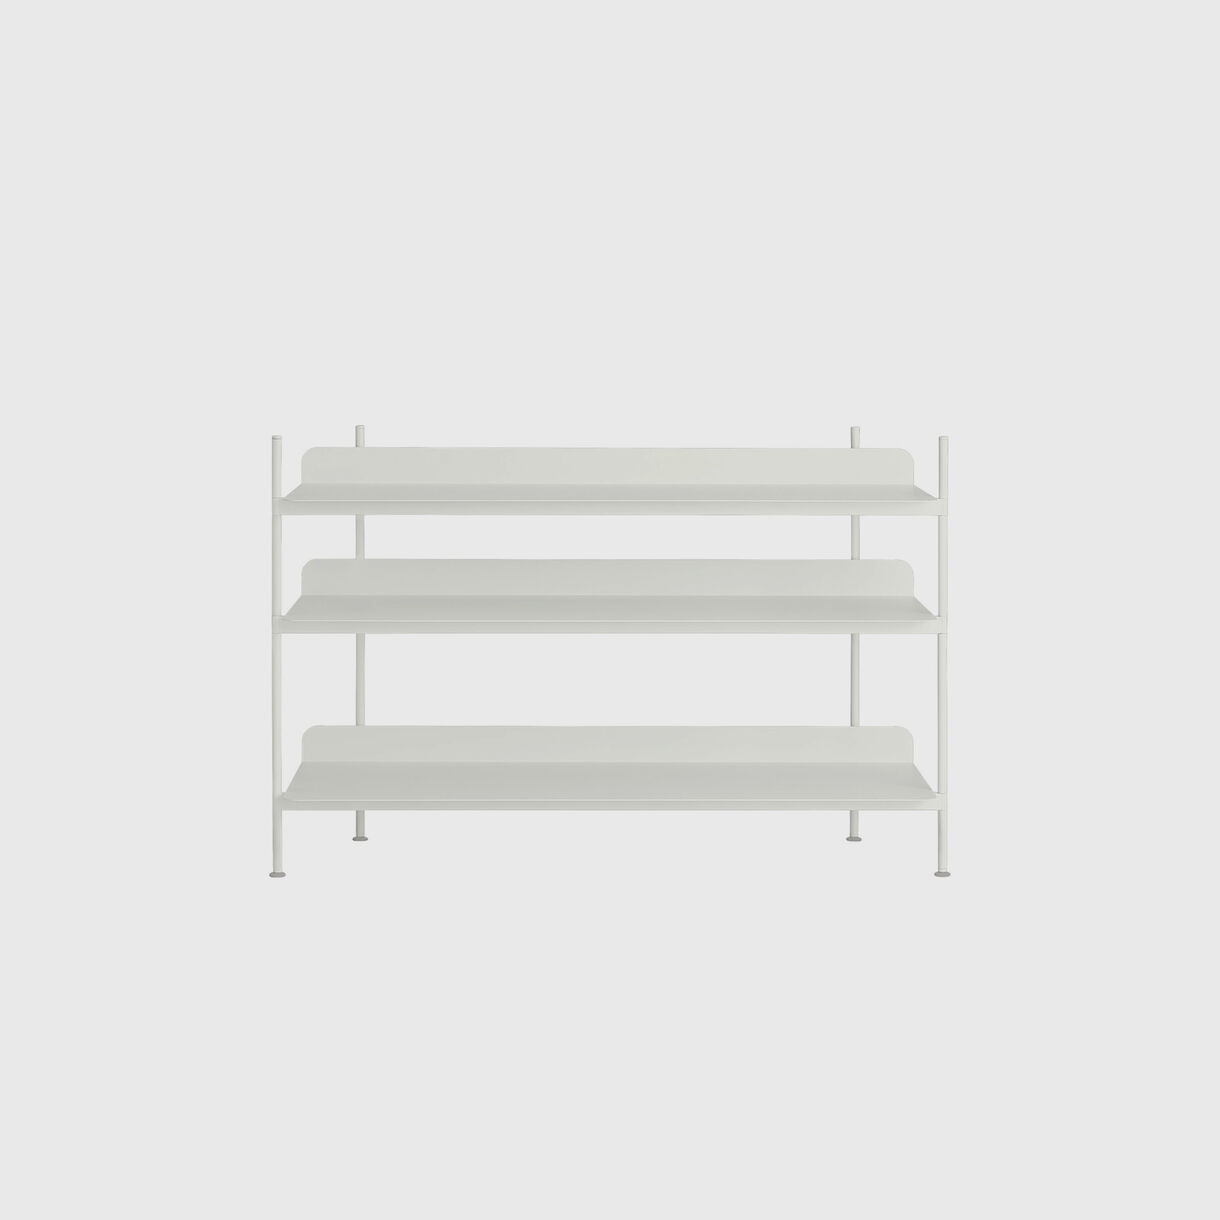 Compile Shelving System, Configuration 2